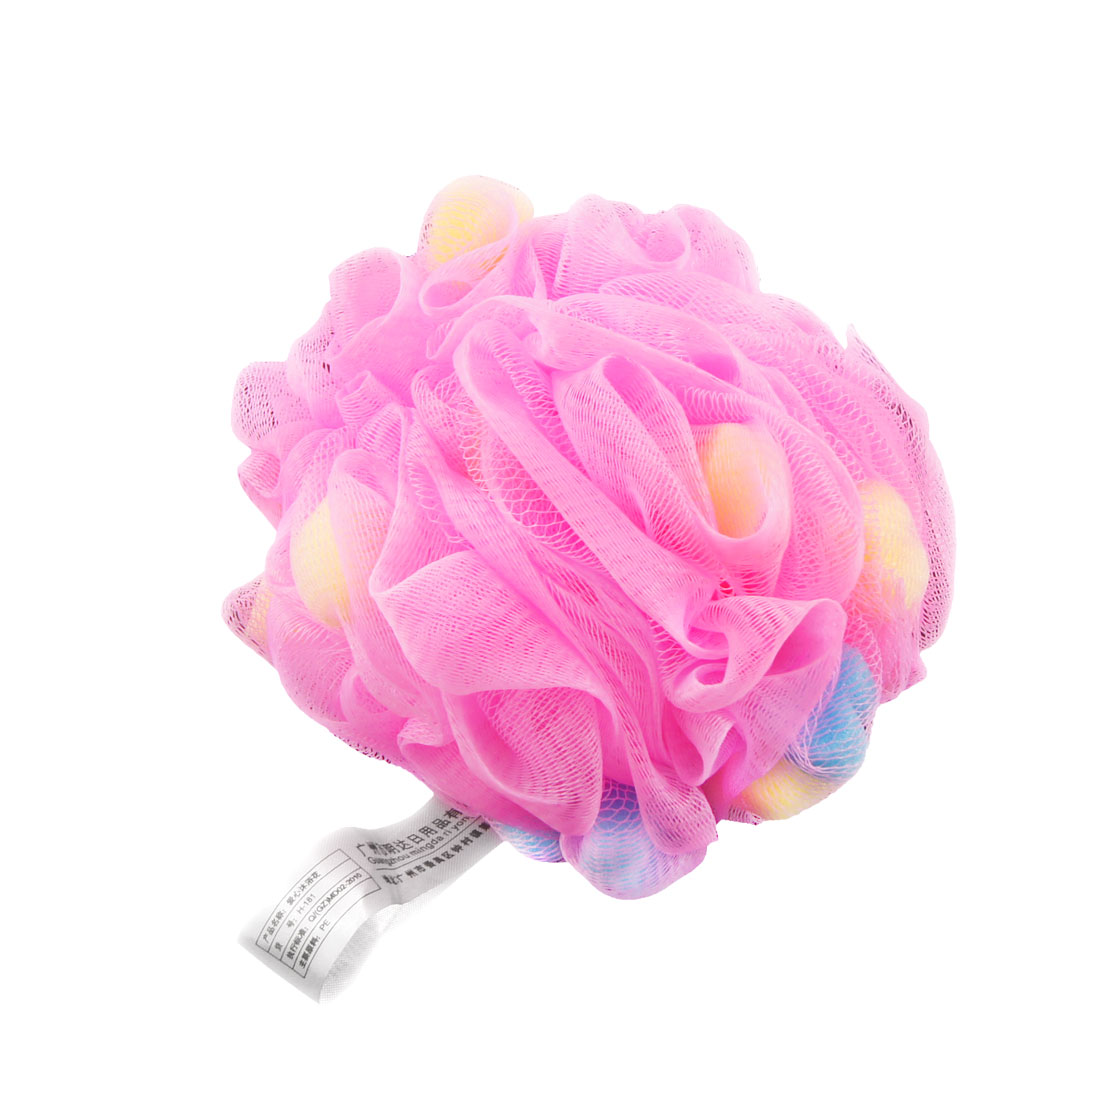 Bathing Skin Care Fuchsia Meshy Hole Ball Scrubber Shower Pouf